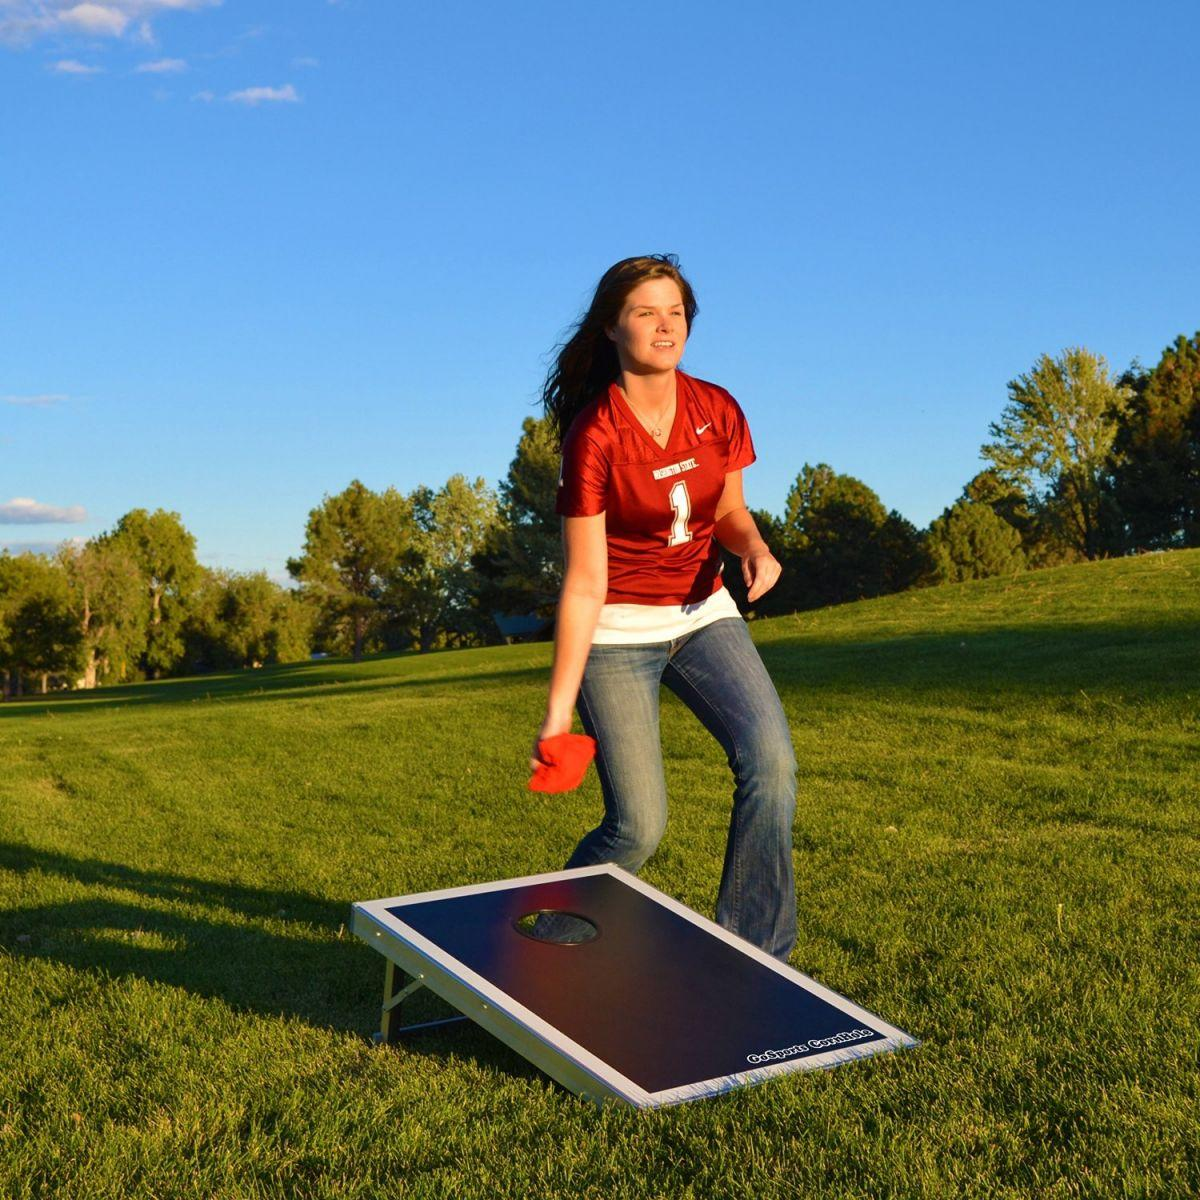 Bean Bag Corn Hole Reantal Denver Aurora Boulder Littleton Co